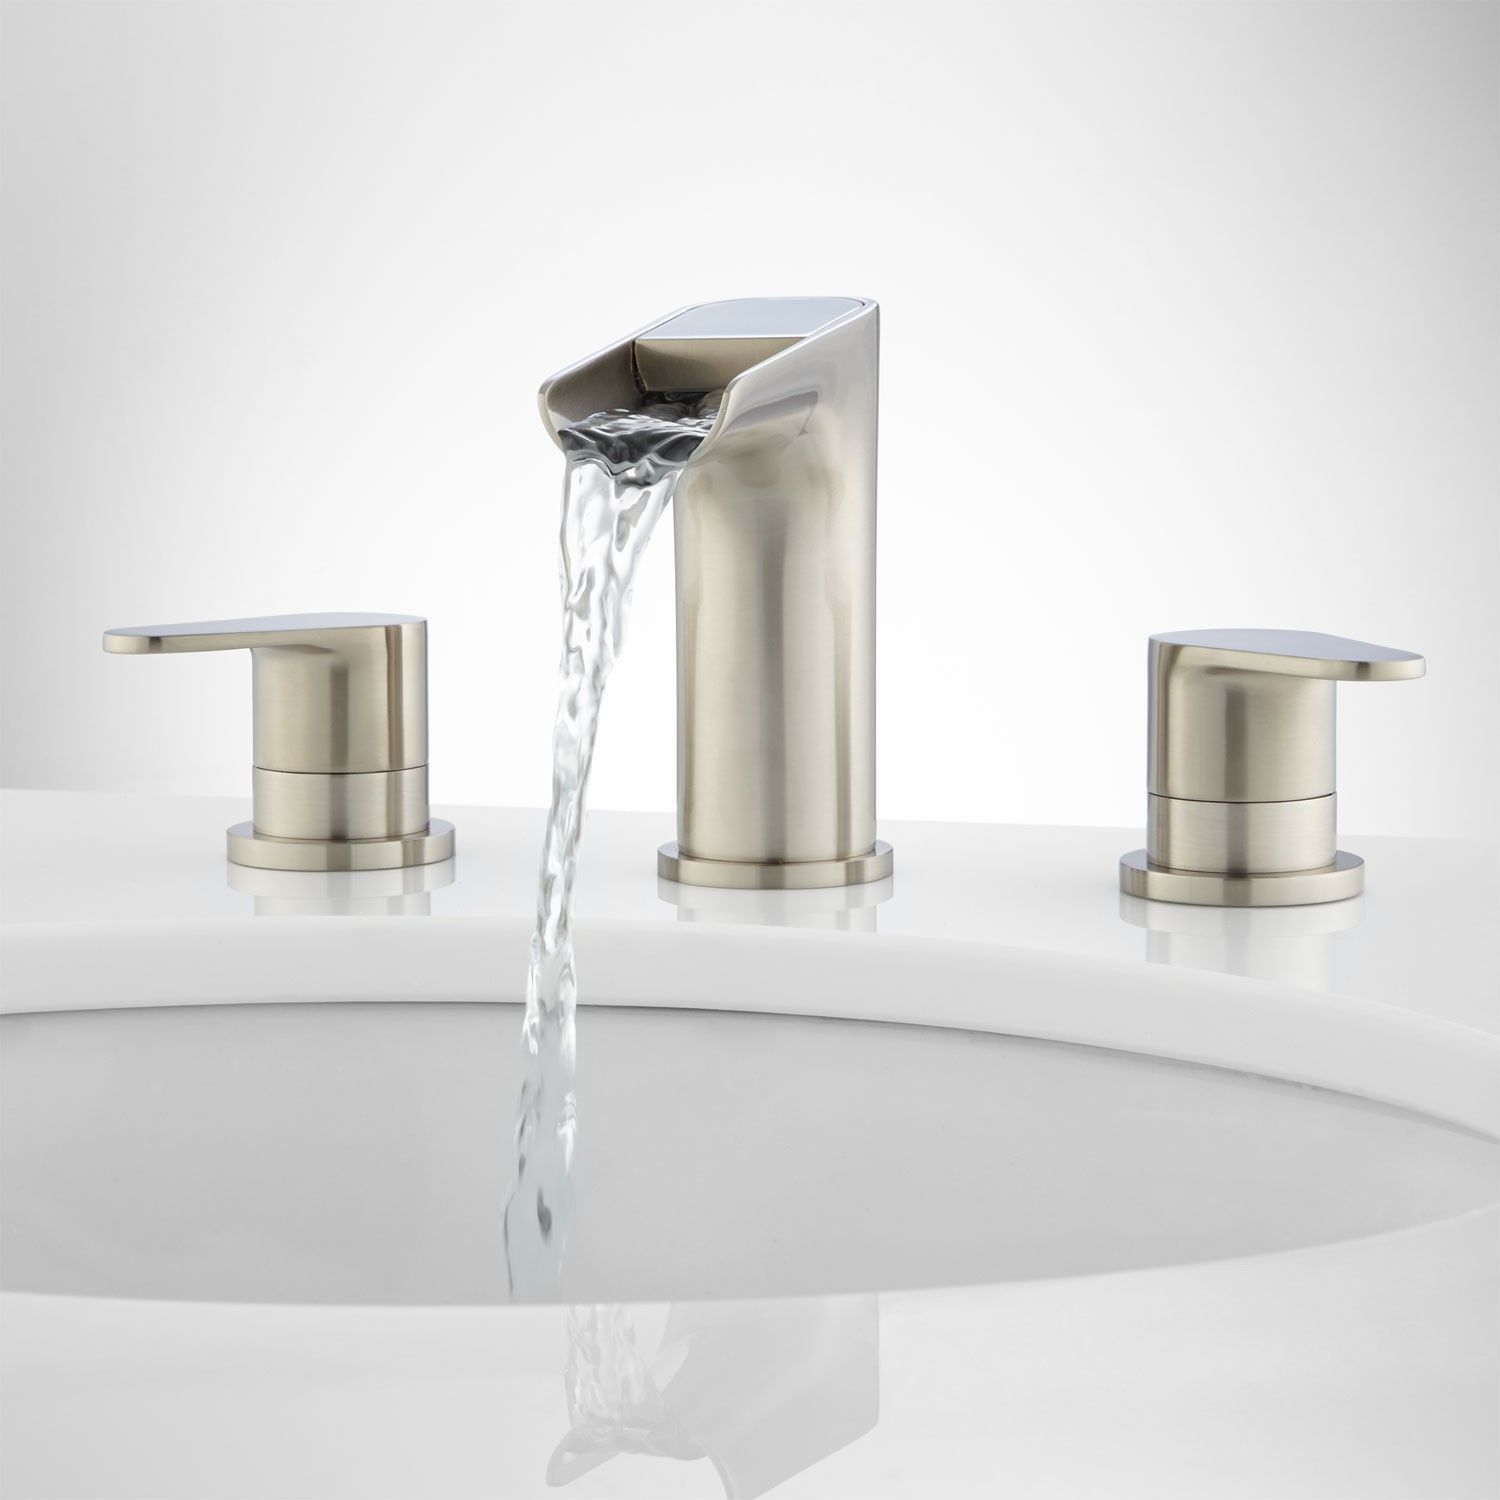 Elegant Bathroom Sink Faucets Made In Usa Check More At Https Homefurnitureone